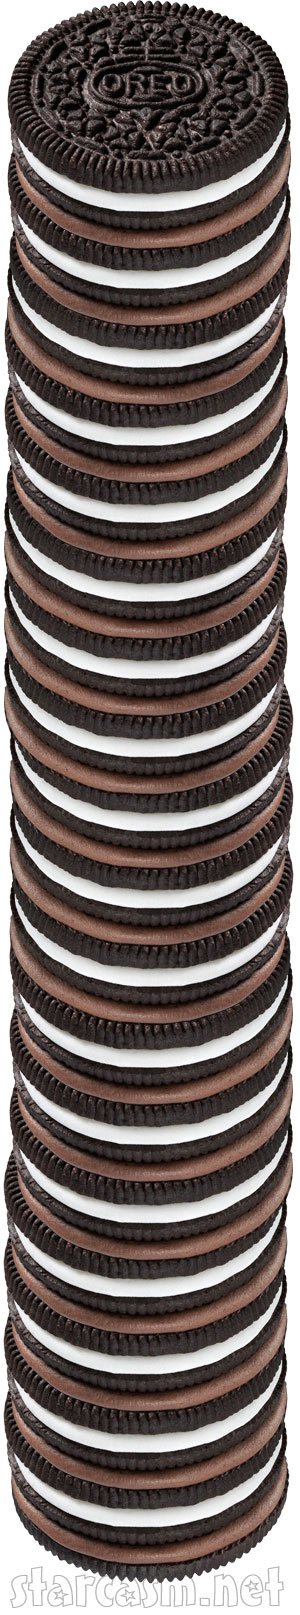 Tower constructed of many Triple Double Oreo cookies